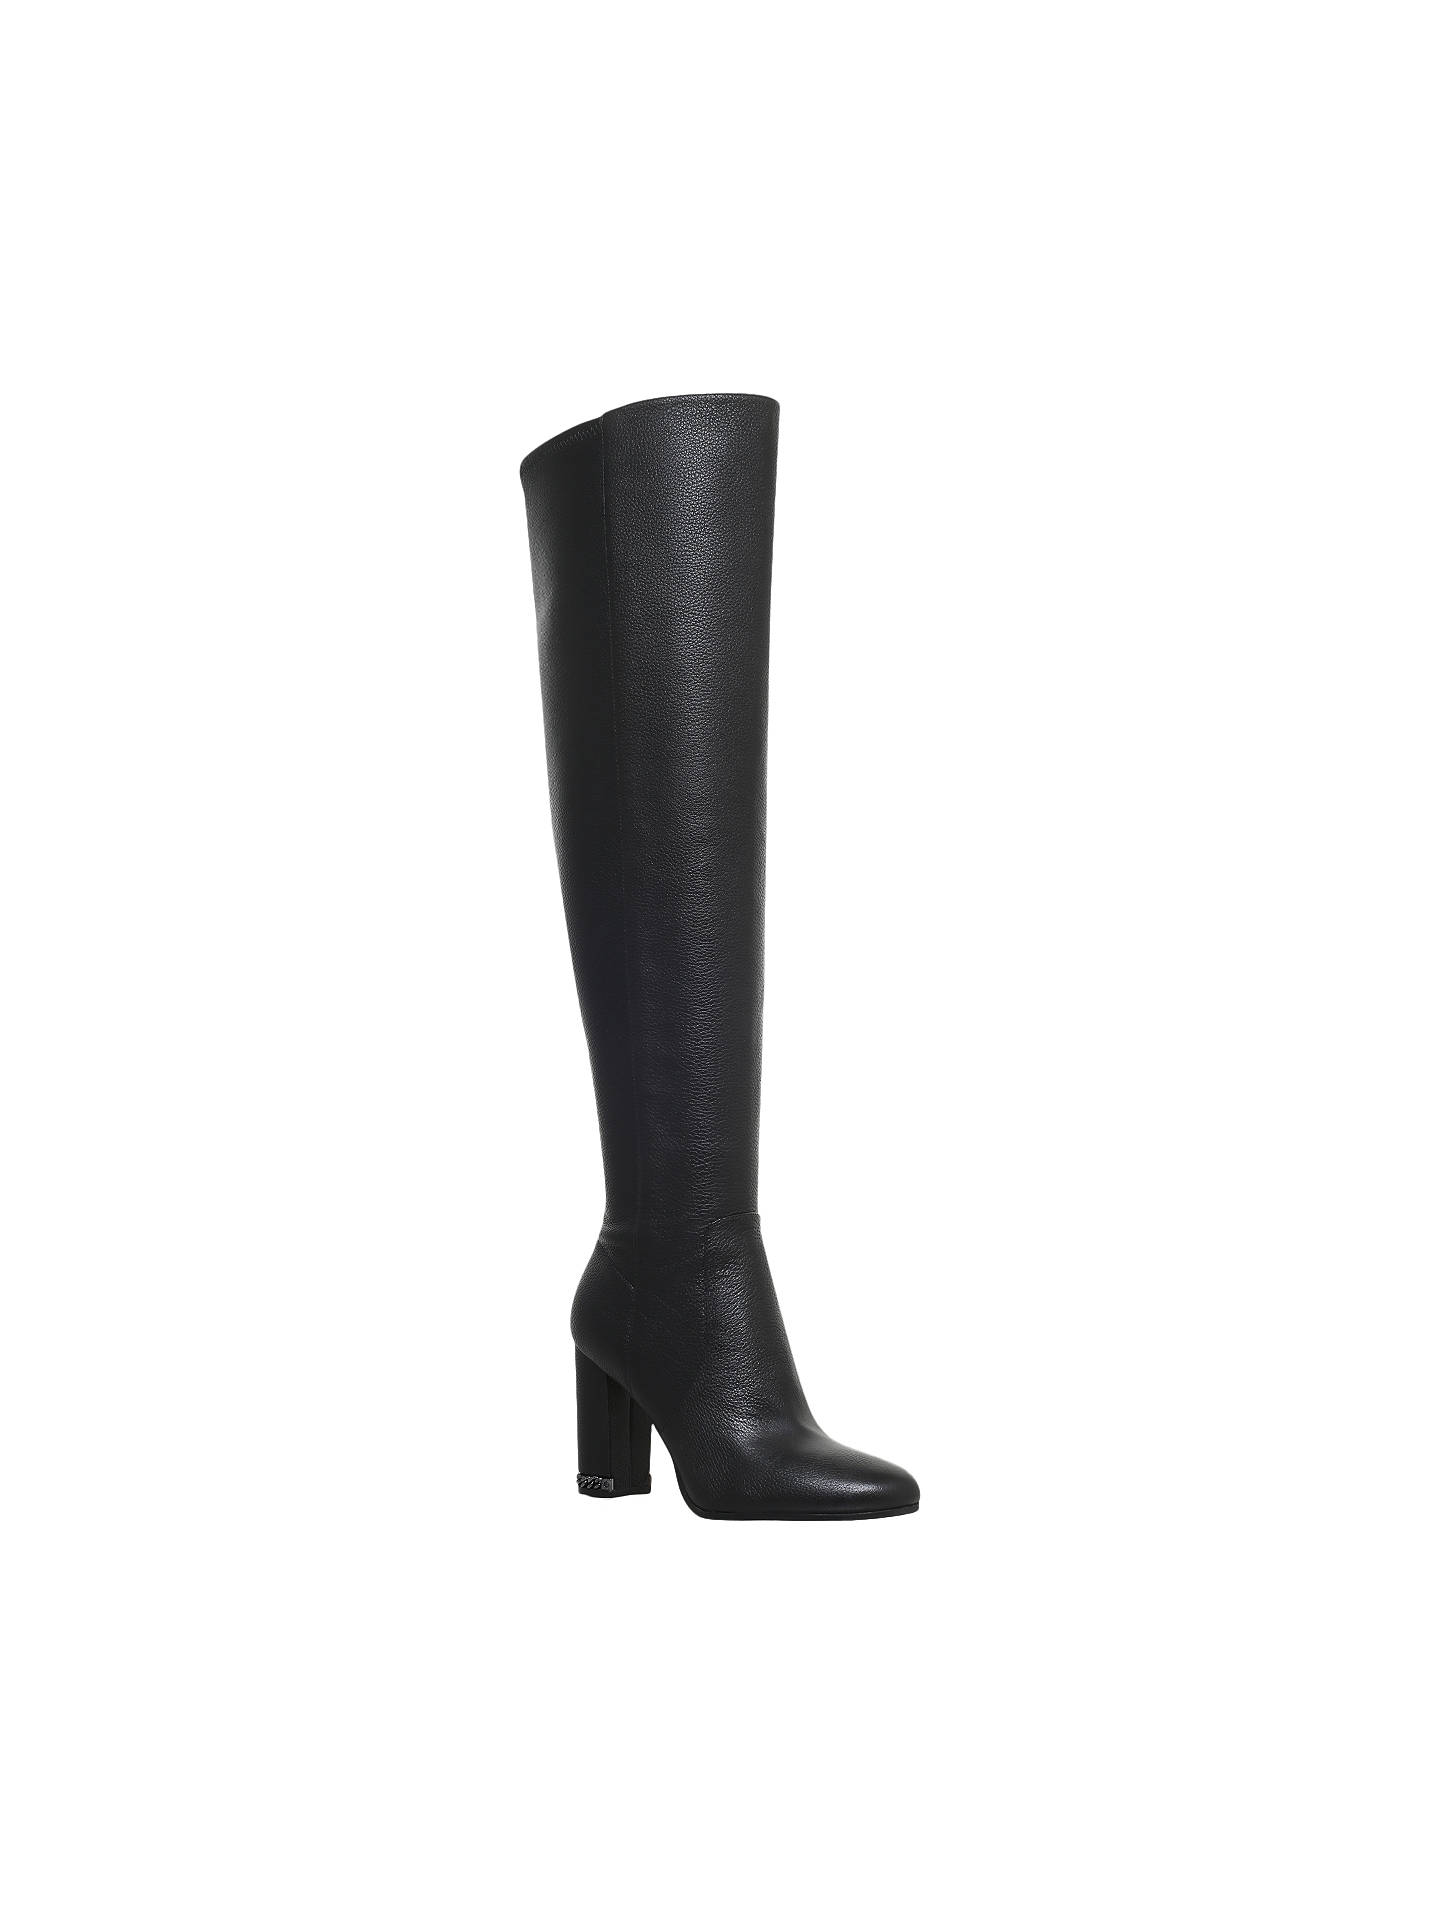 89bf026ca65 Buy MICHAEL Michael Kors Sabrina Over the Knee Boots